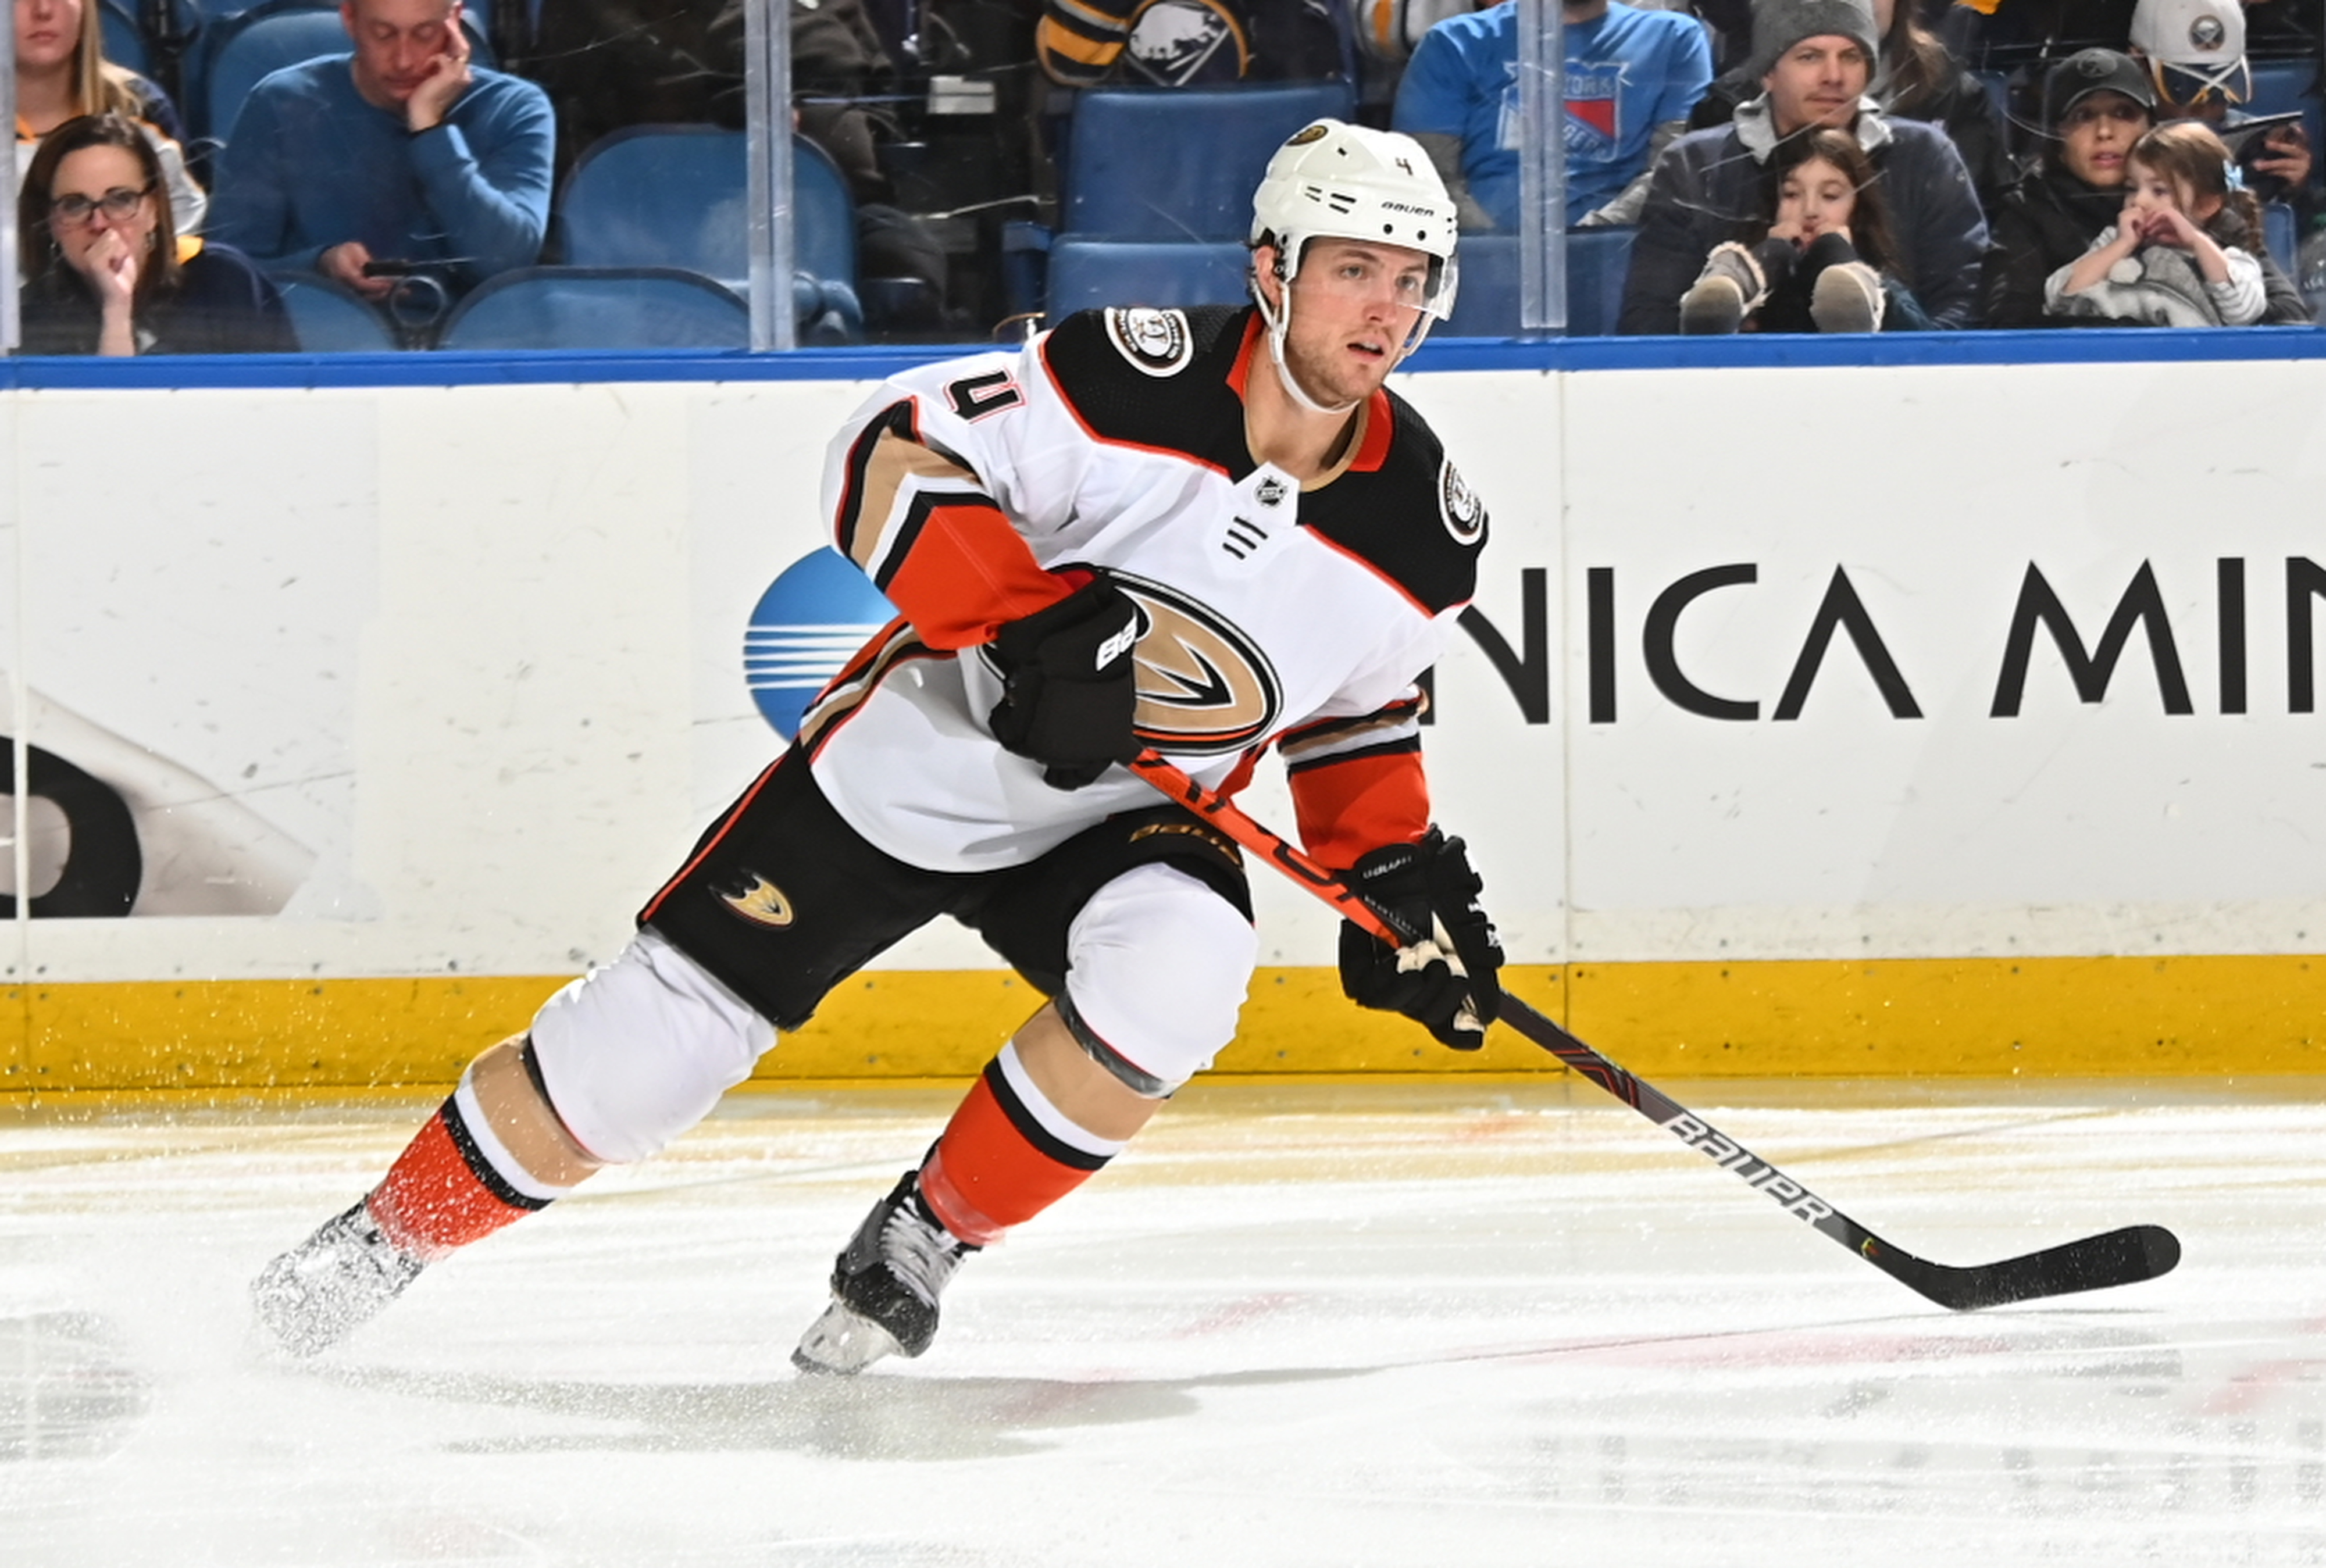 BUFFALO, NY - FEBRUARY 9: Cam Fowler #4 of the Anaheim Ducks skates during an NHL game against the Buffalo Sabres on February 9, 2020 at KeyBank Center in Buffalo, New York. Anaheim won, 3-2.